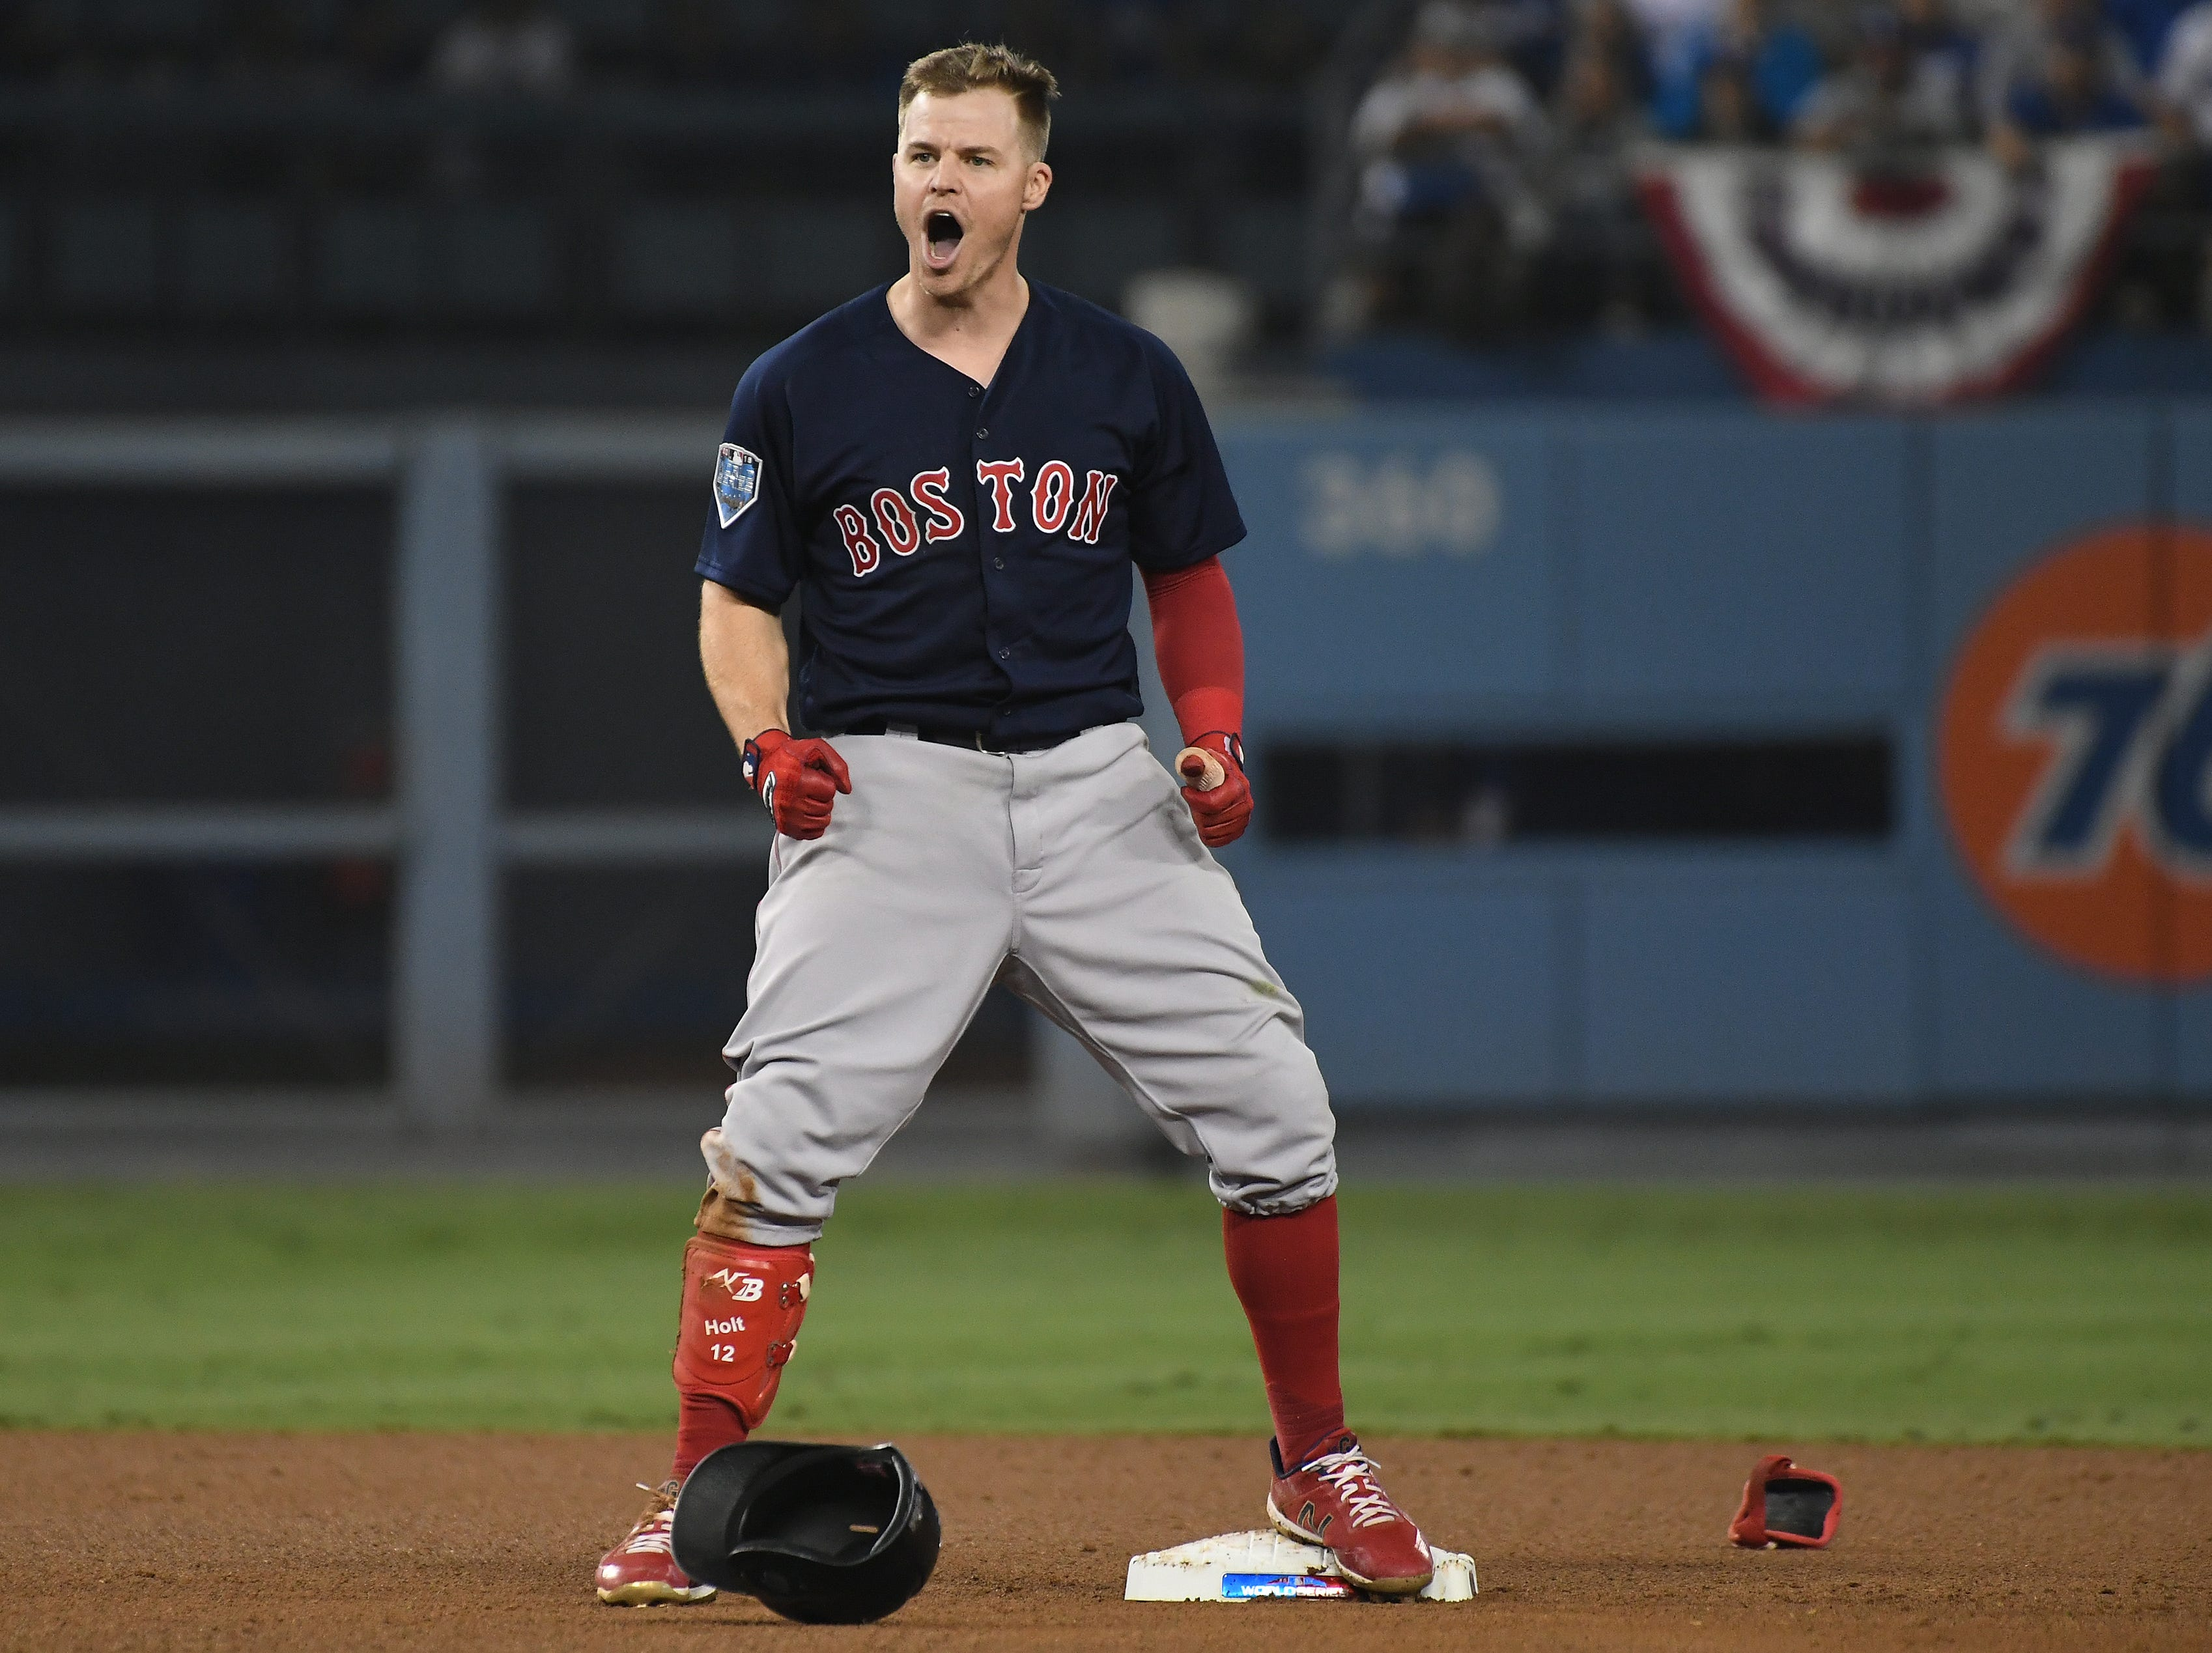 Game 4 at Dodger Stadium: Brock Holt reacts after hitting a double in the ninth.